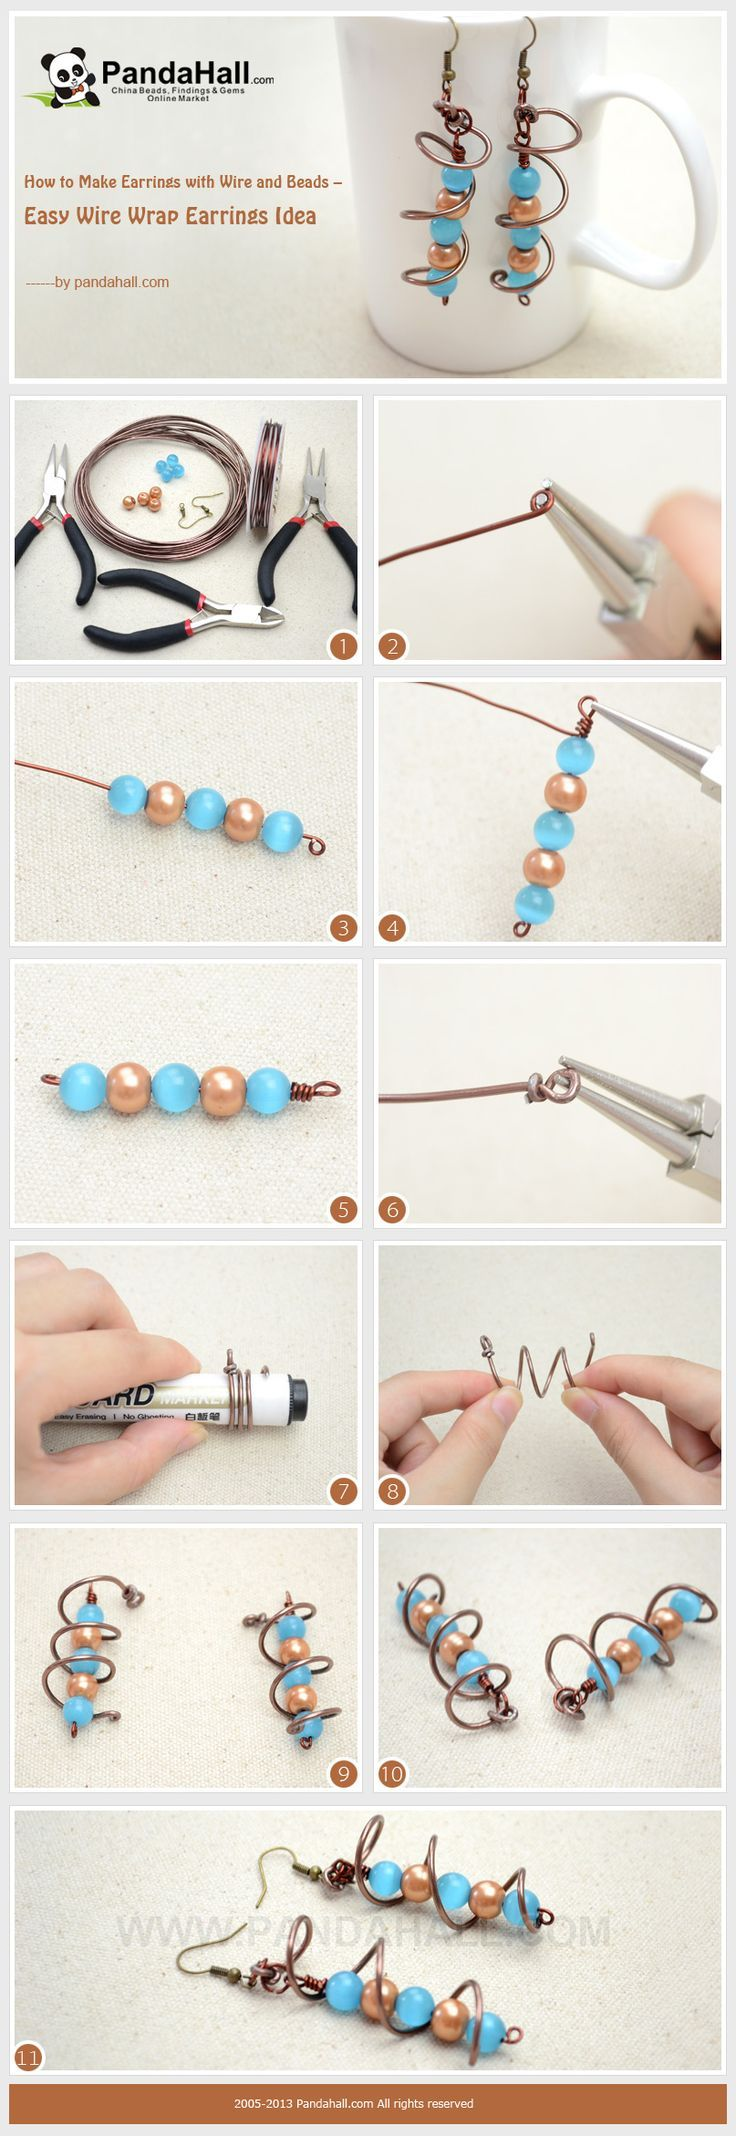 How to Make Earrings with Wire and Beads – Easy Wire Wrap Earrings ...